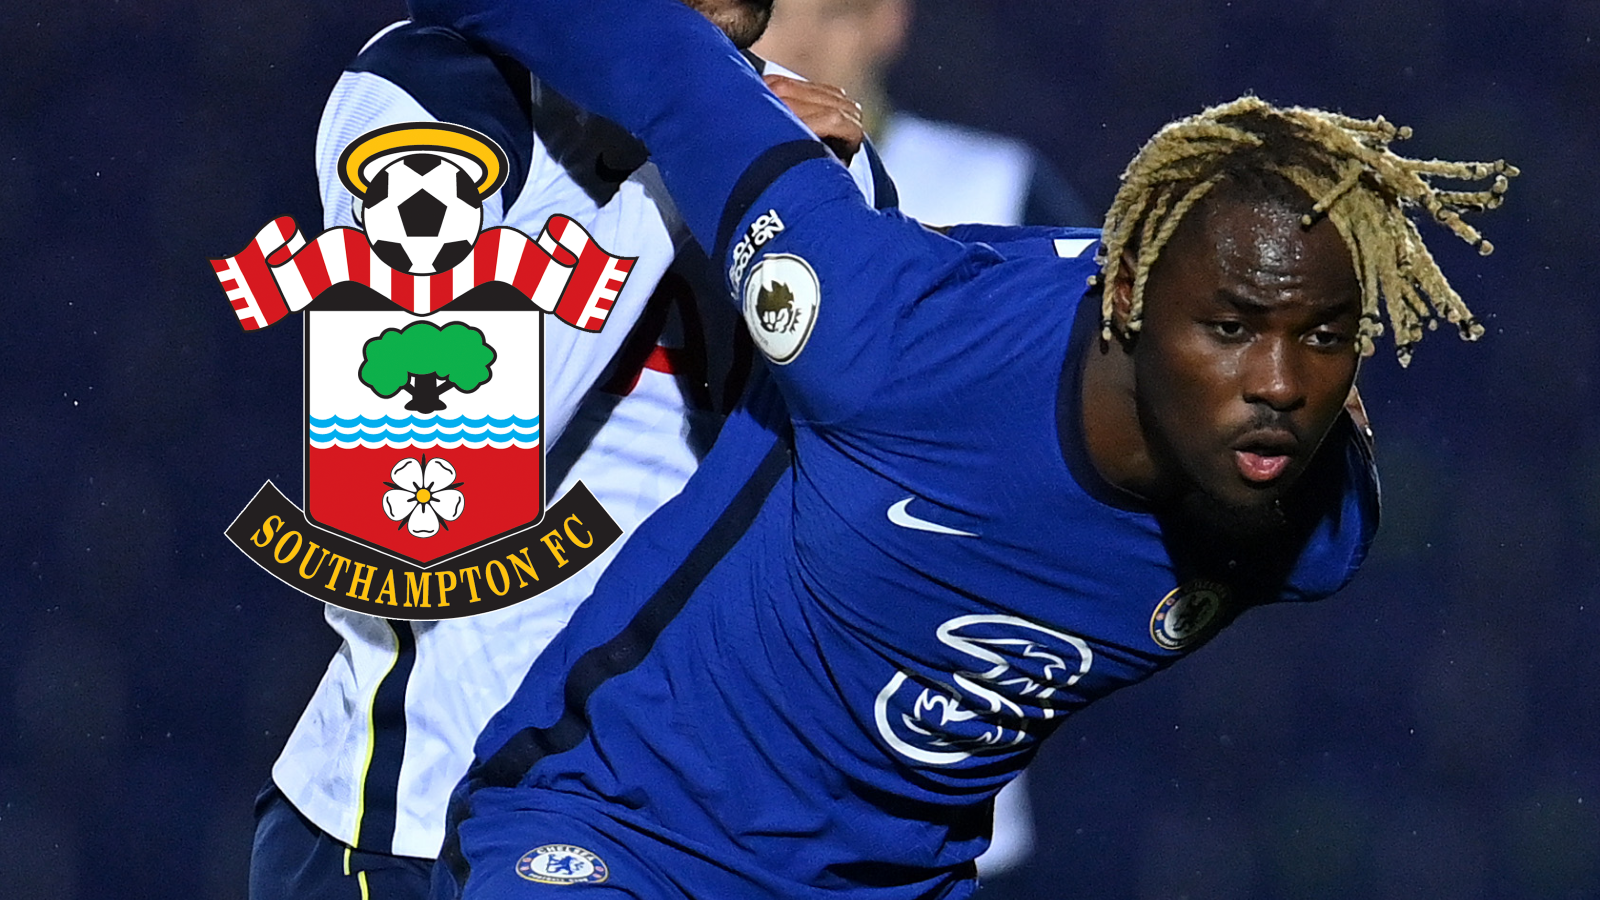 Chelsea defender Simeu to join Southampton in deal worth up to £1.5m with add-ons